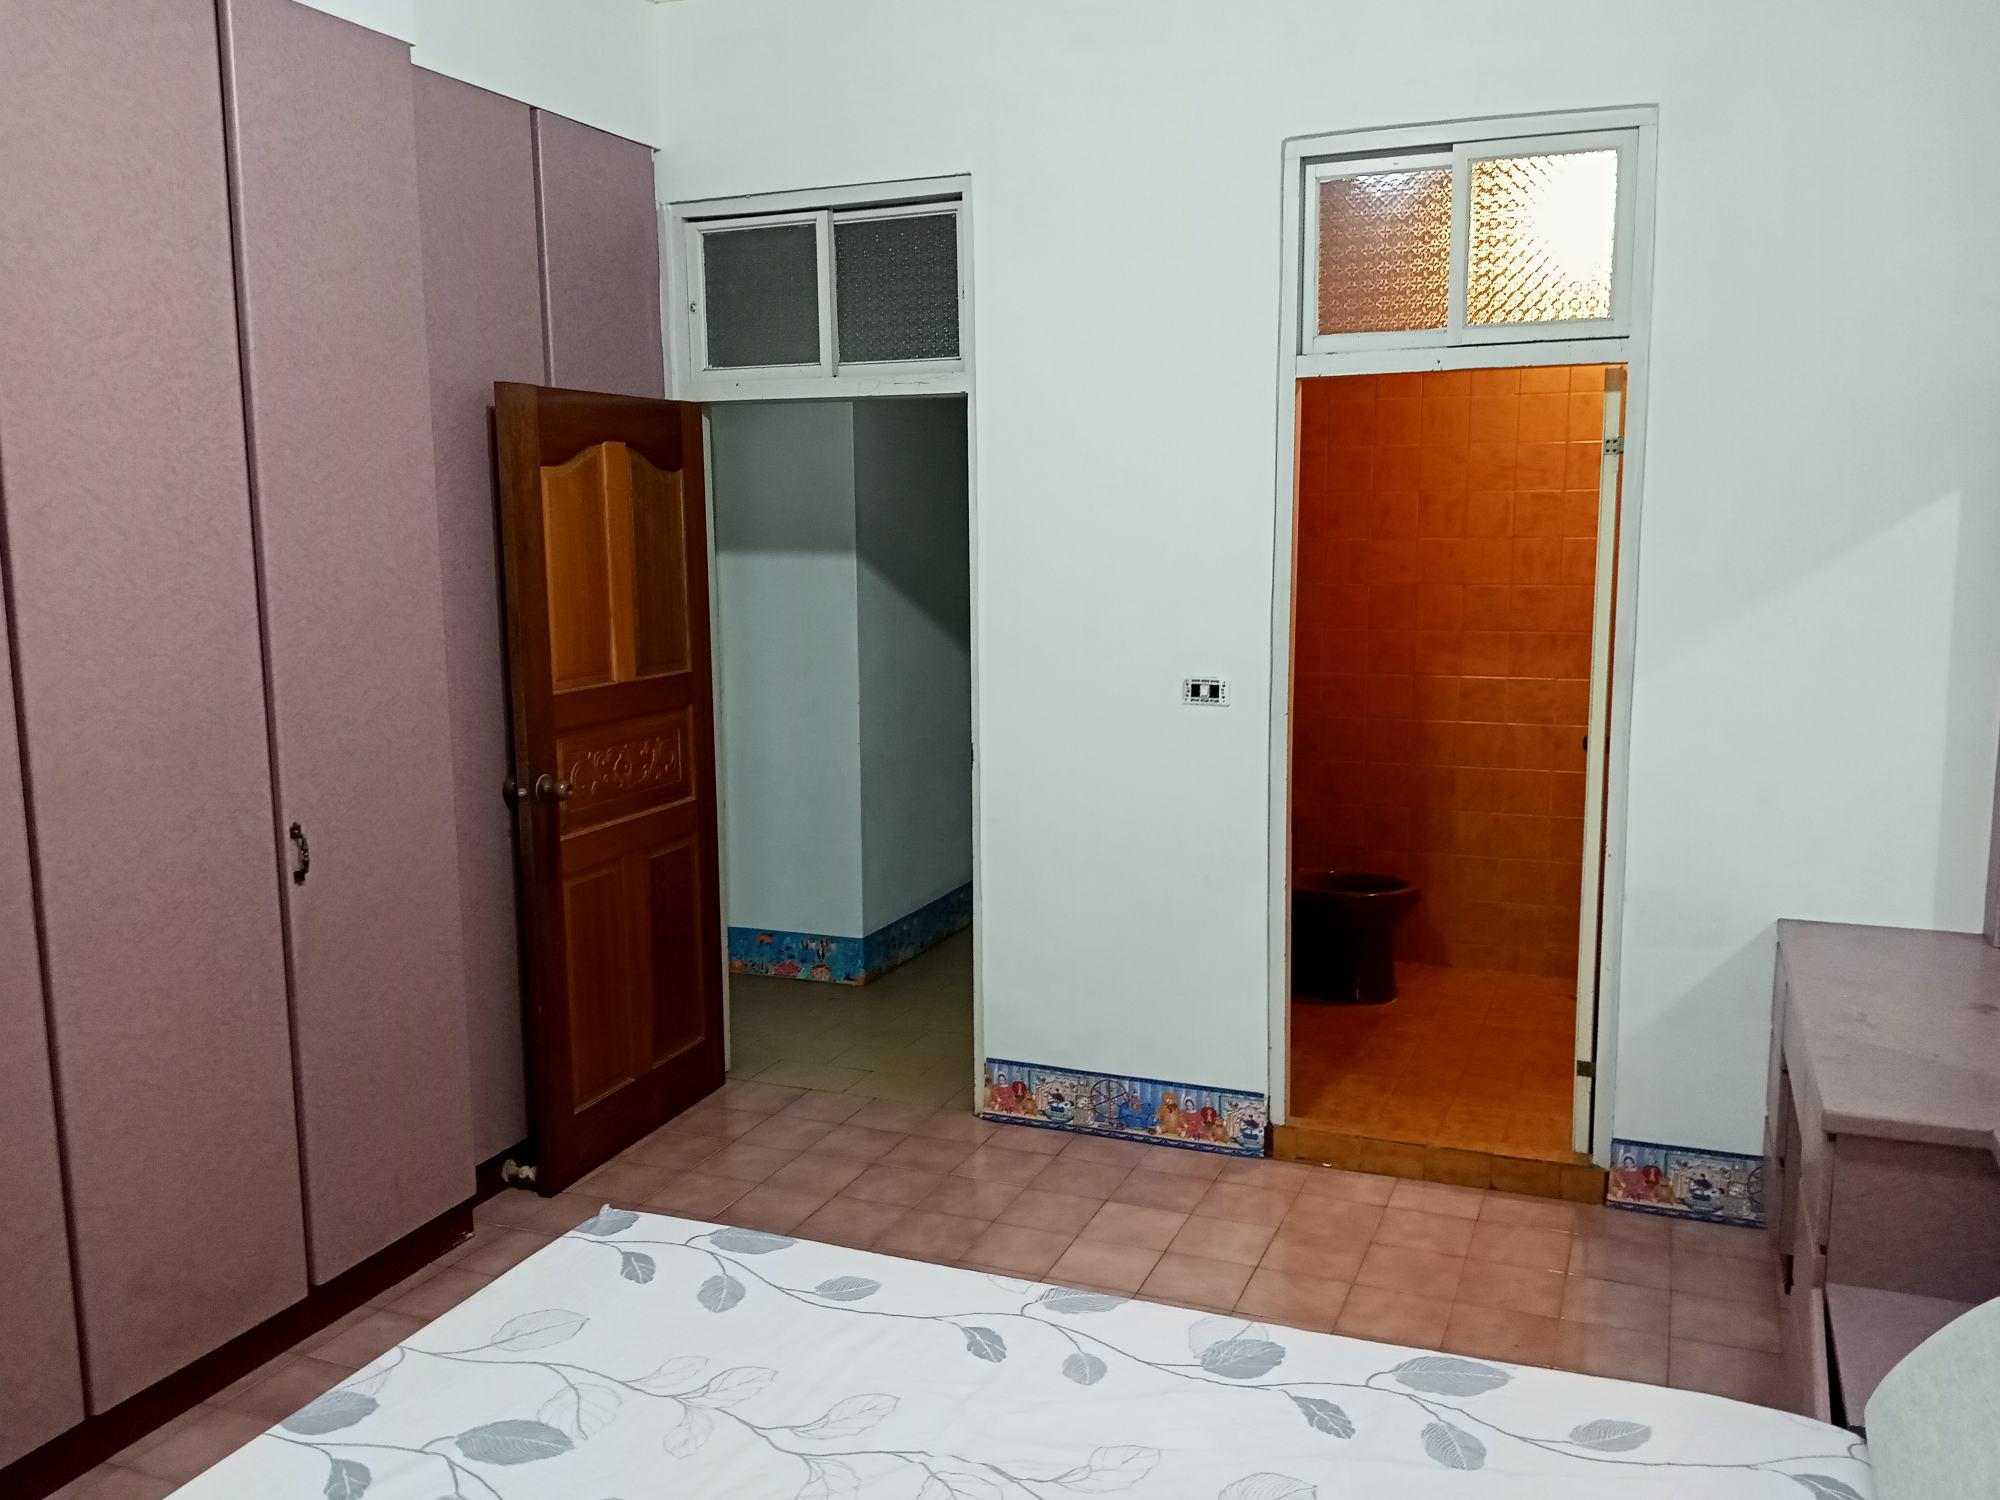 Teaching English and Living in Taiwan Apartments to Share, cozy room sharing for a good tenant image